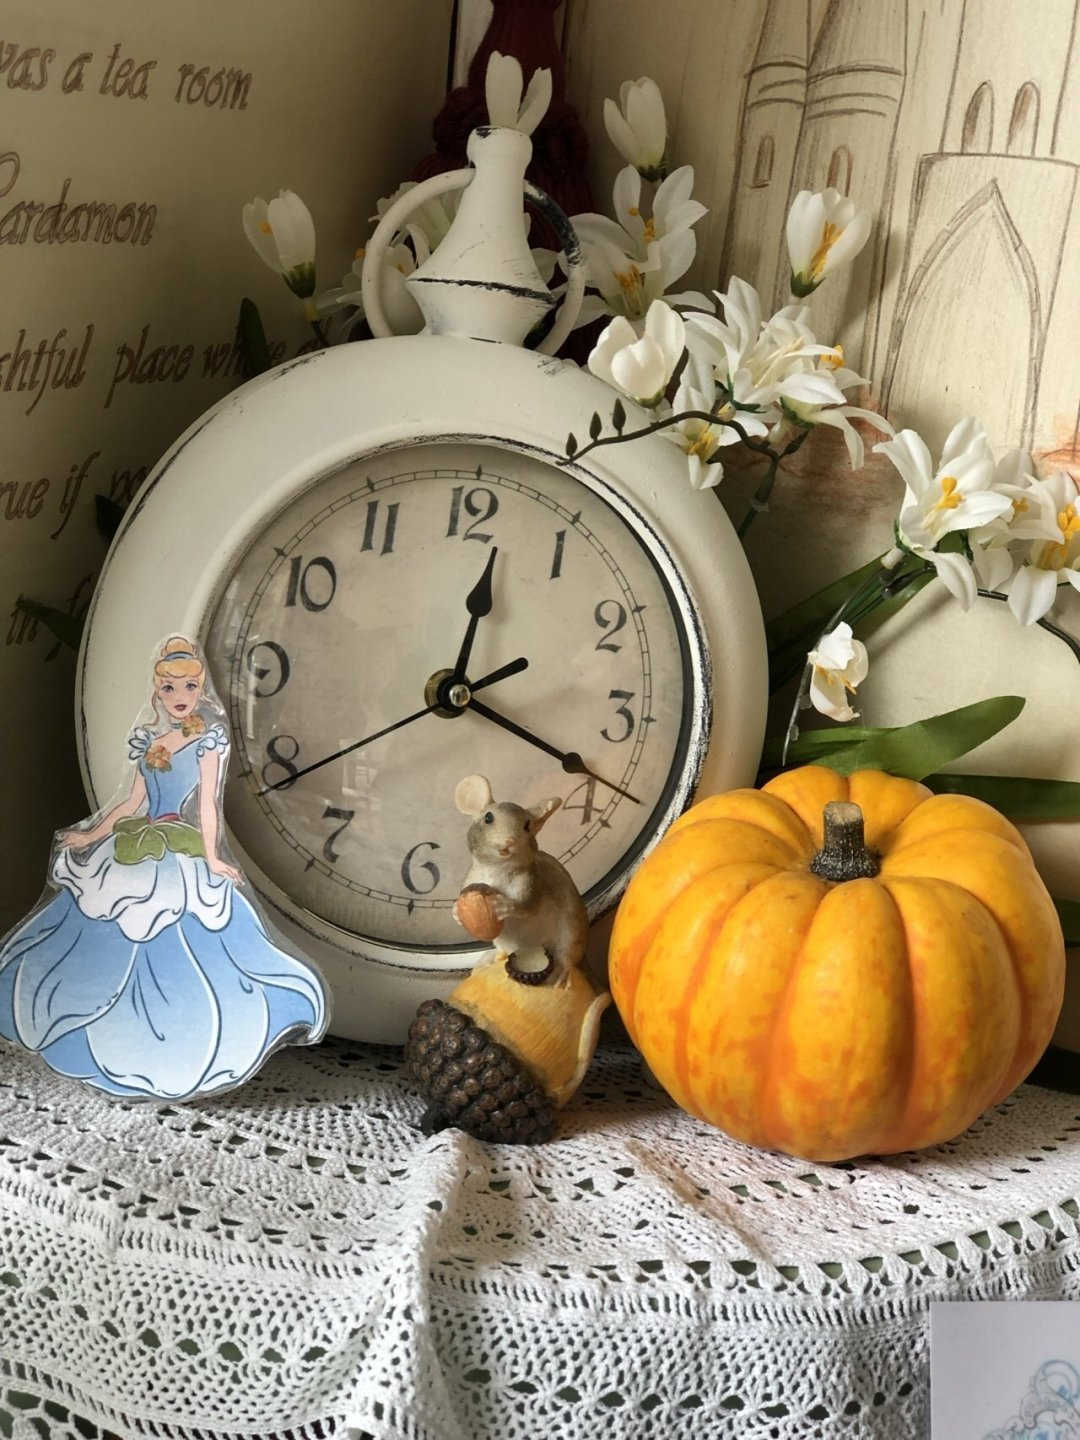 Cinderella Clock, pumpkin, and mouse, table setting from the Cinderella Afternoon Tea.